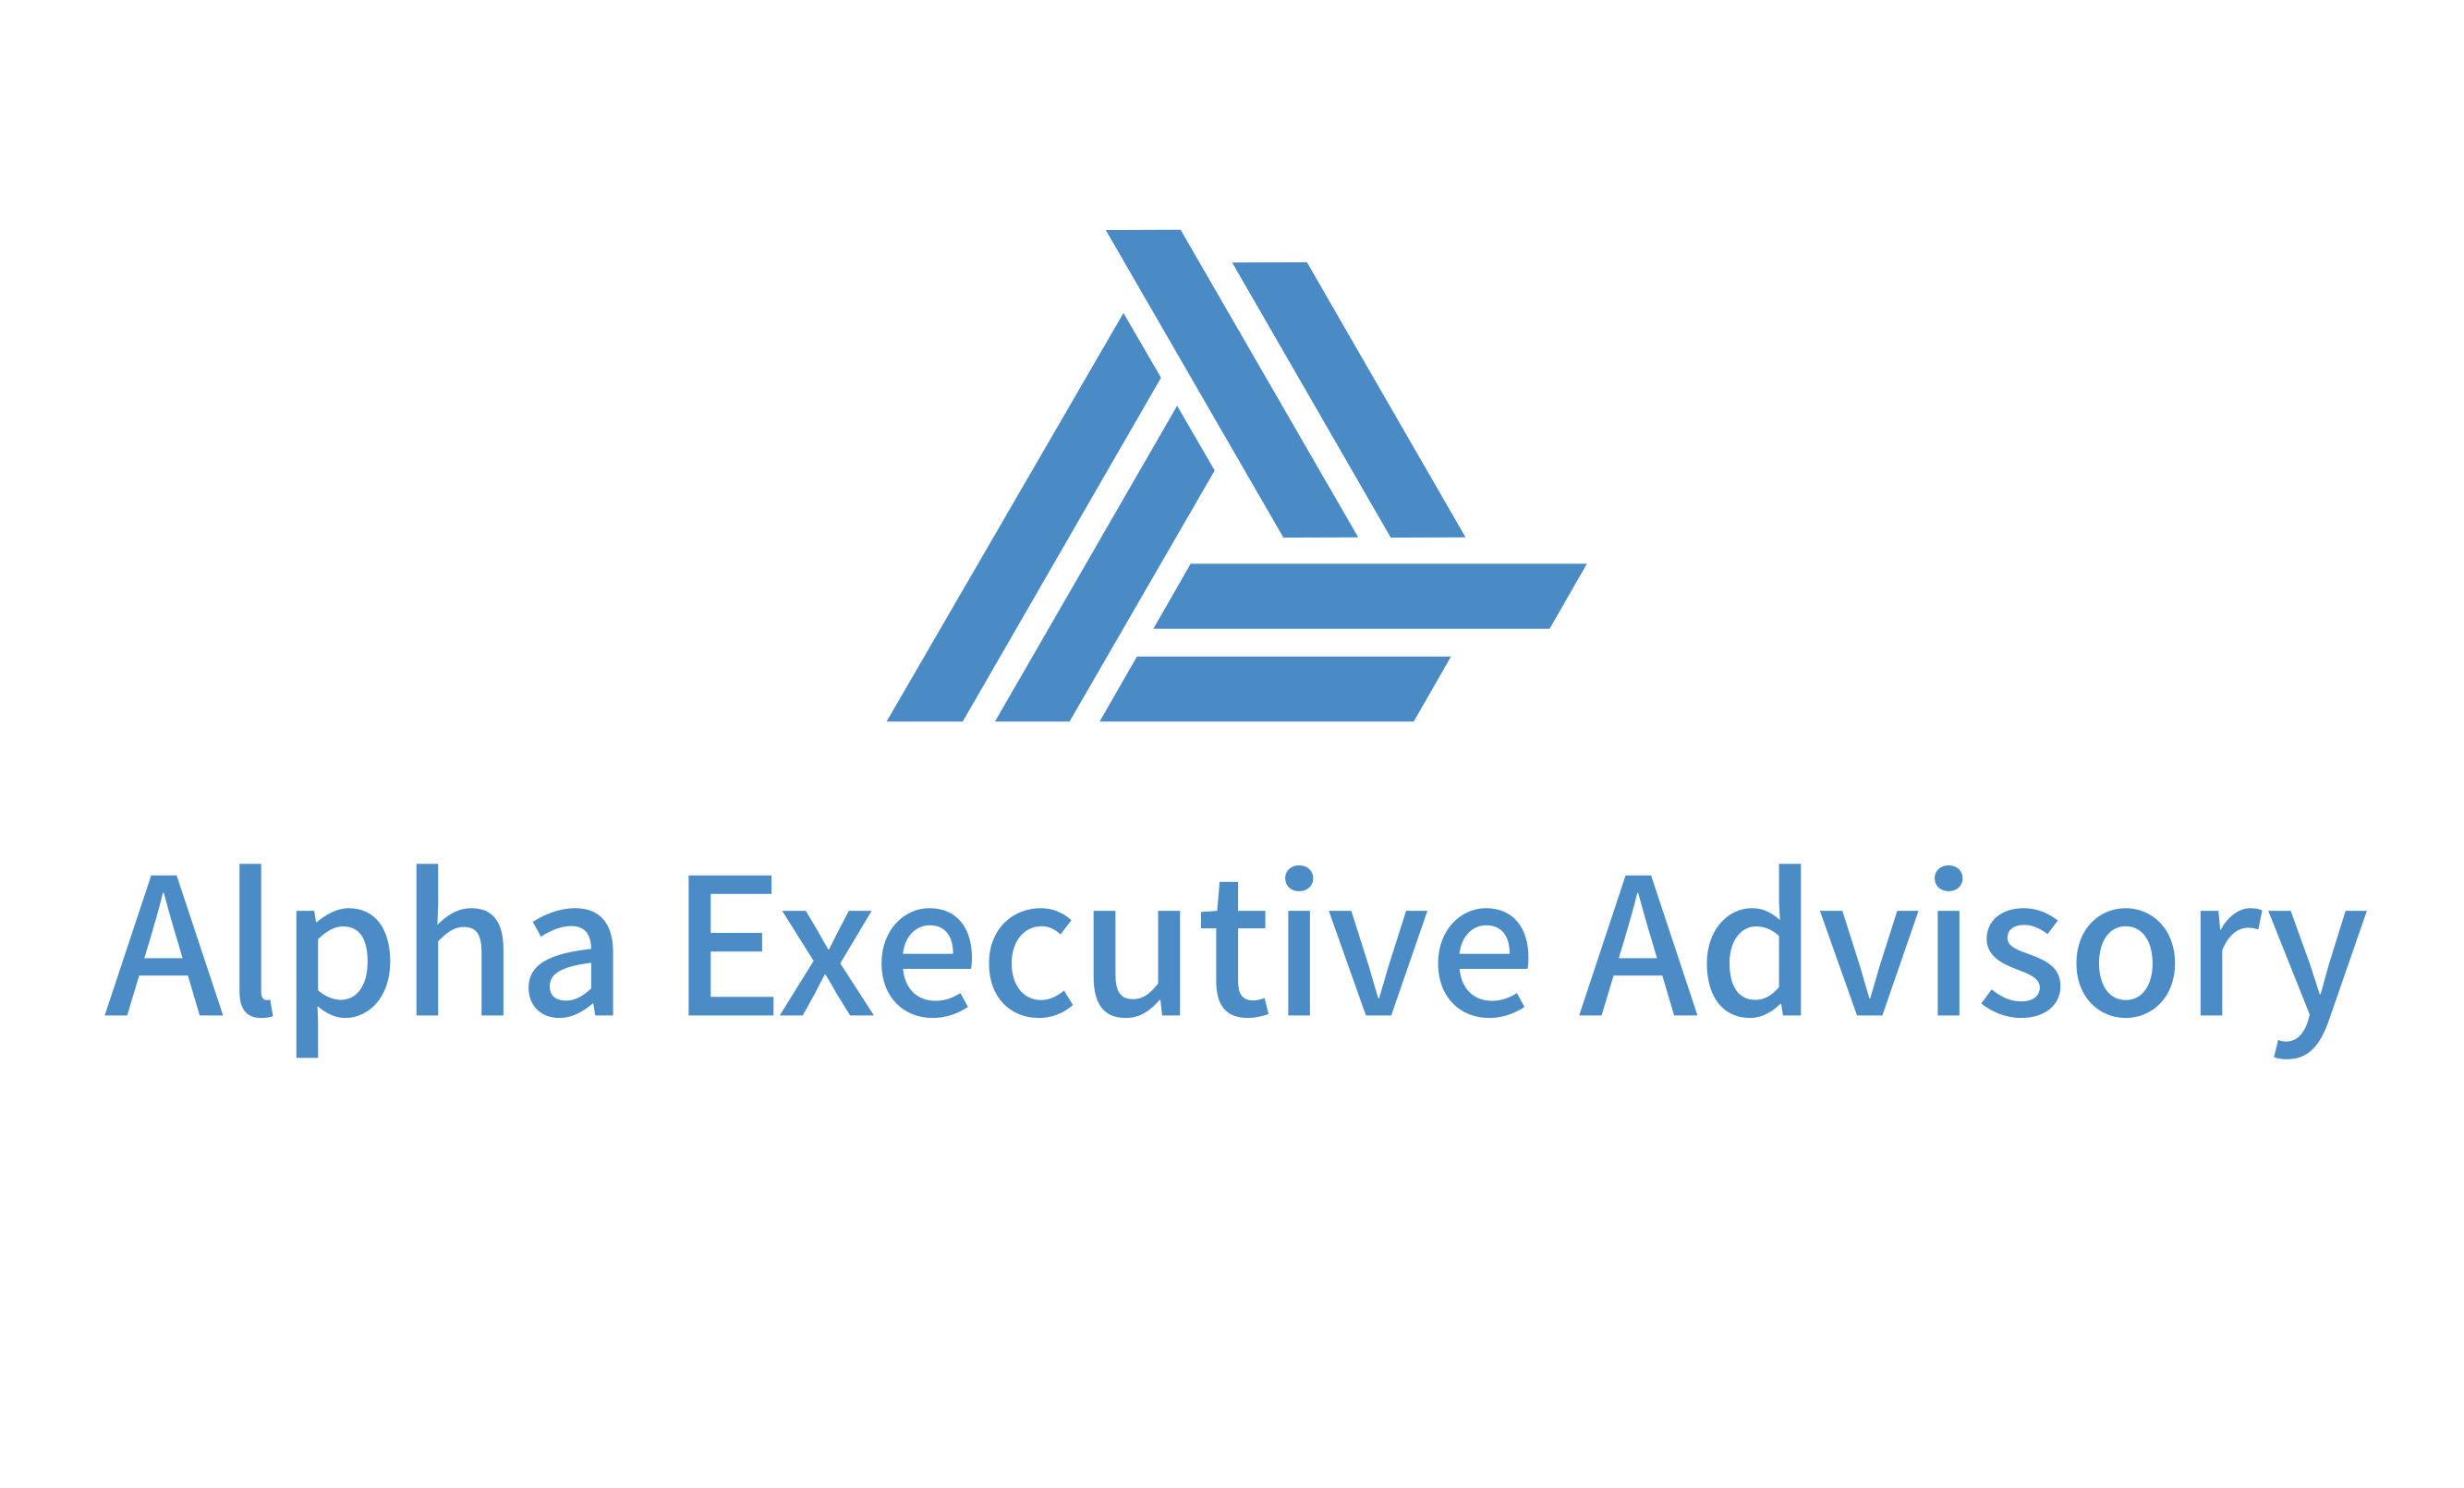 Alpha Executive Advisory